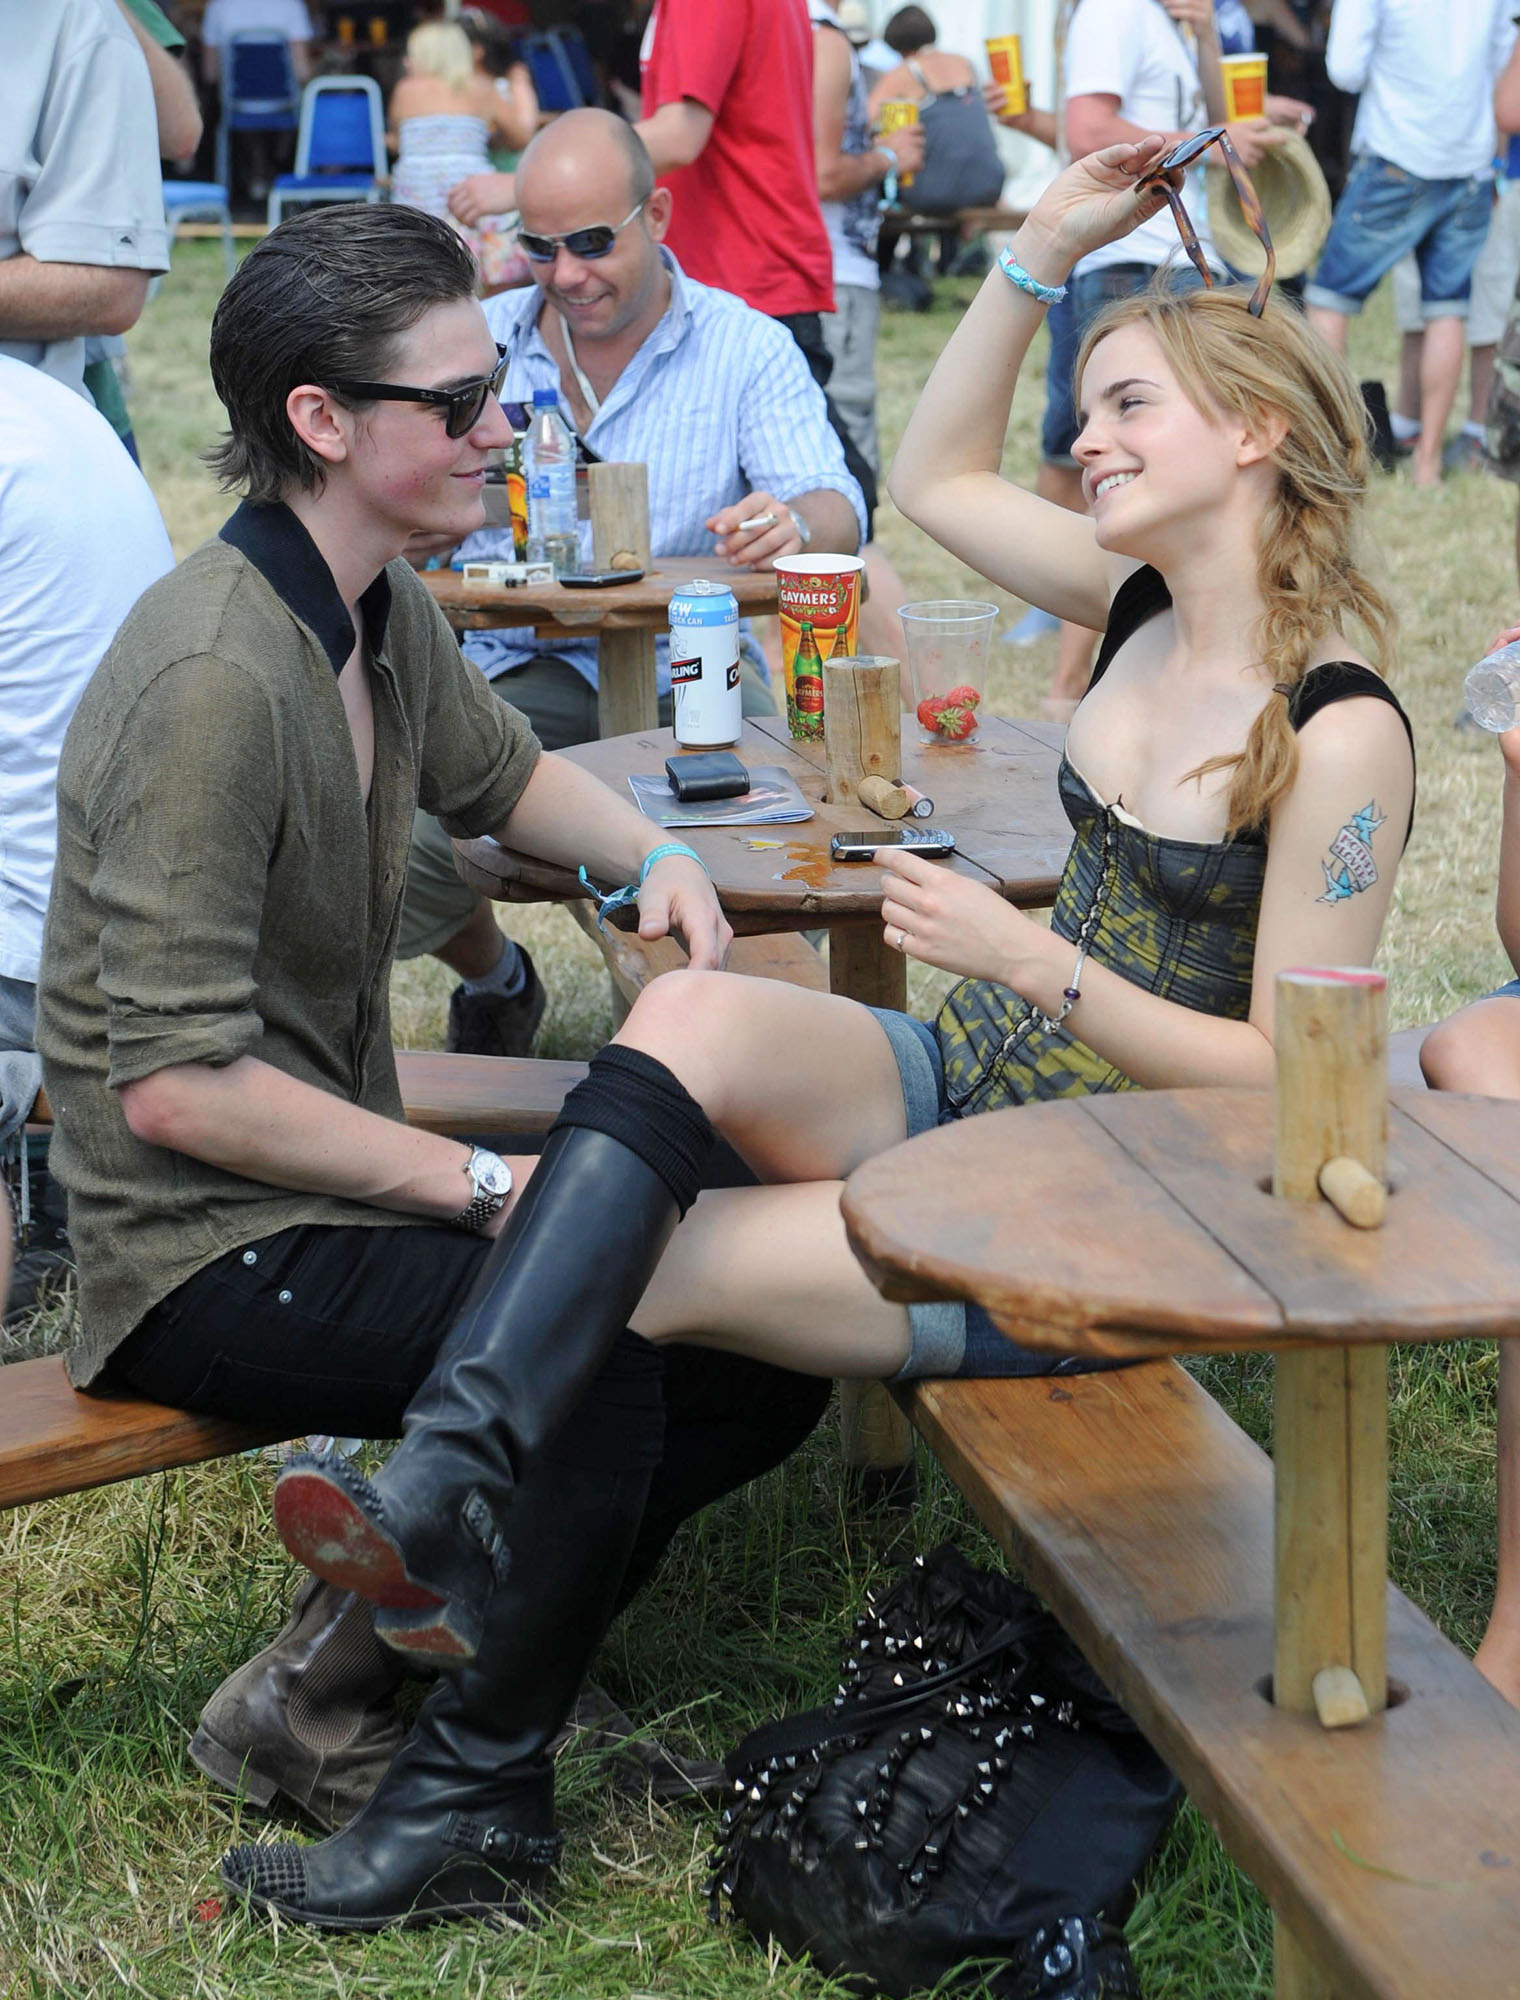 2010 Glastonbury 音乐 Festival in Somerset, England (25.06.10) [HQ]